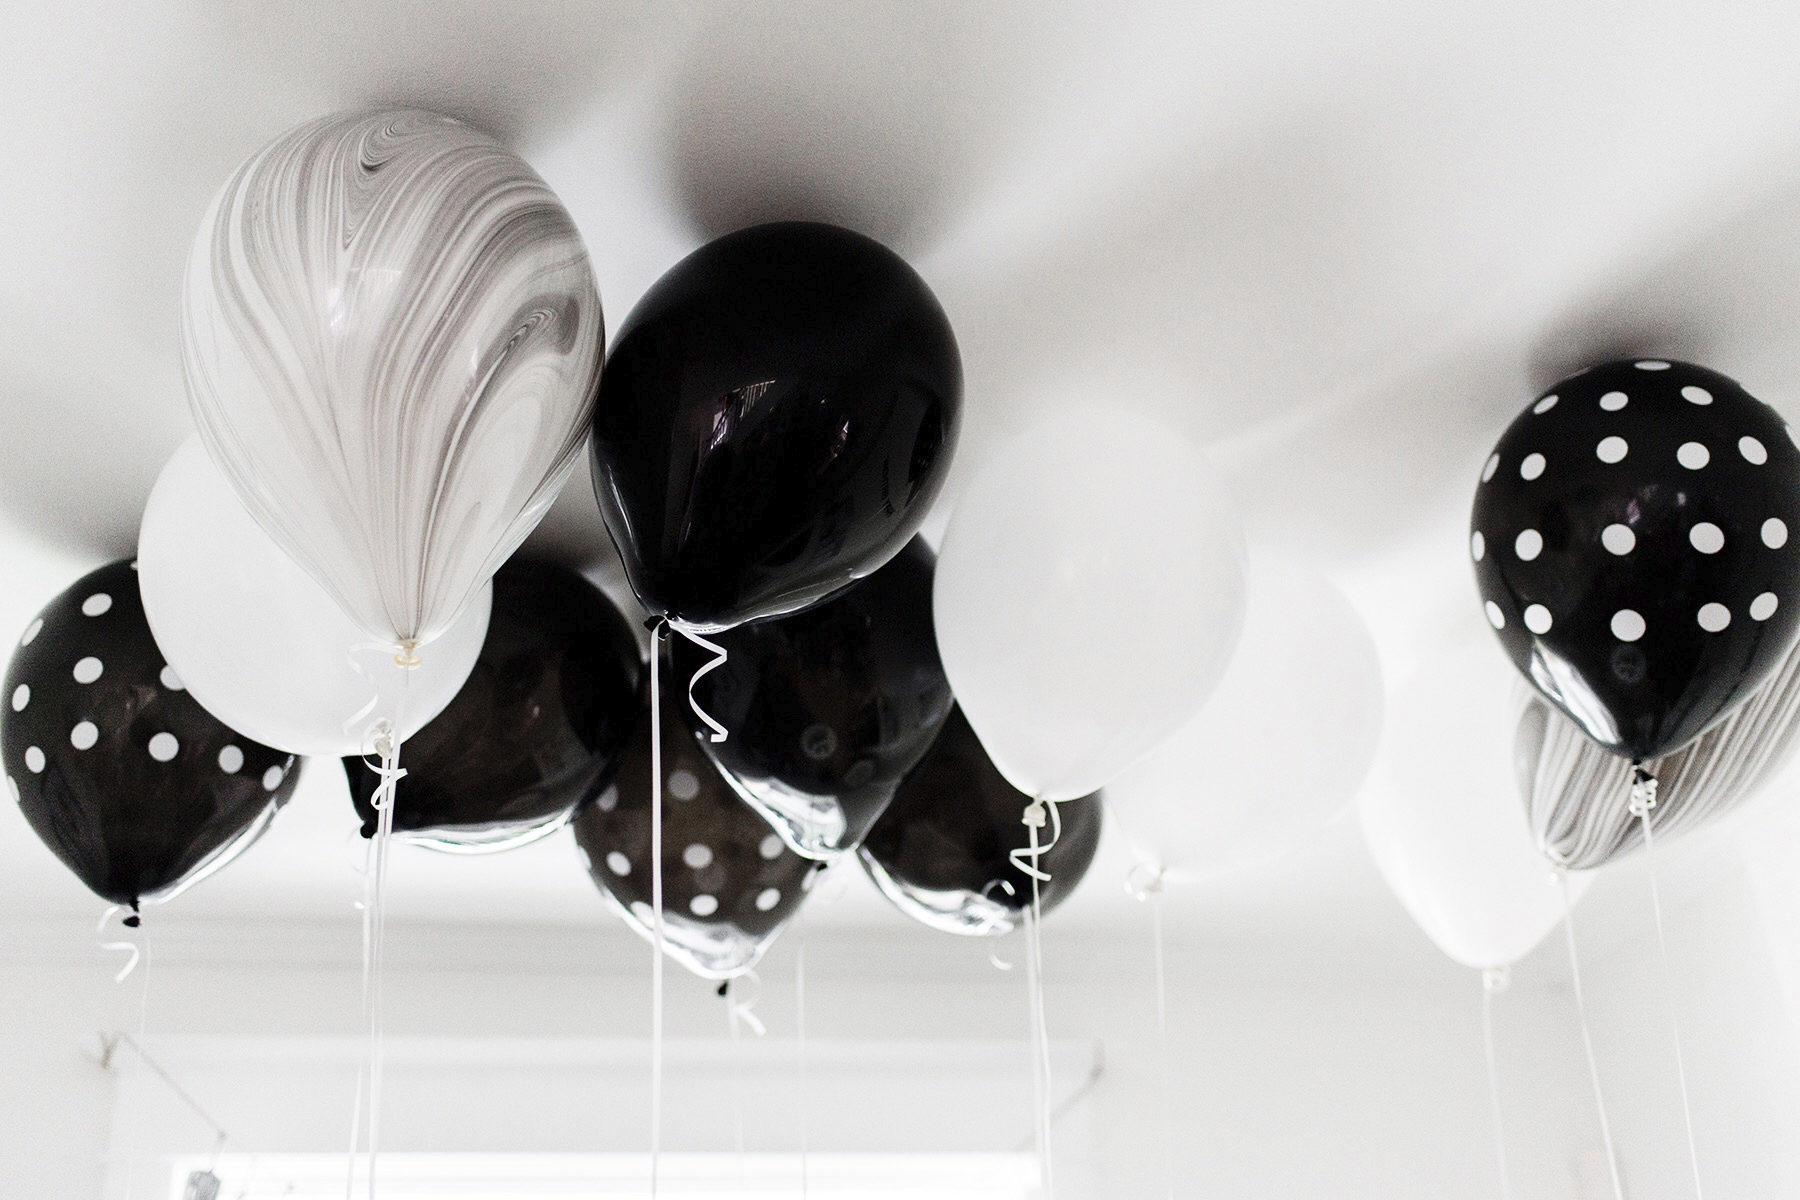 Kids birthday party balloons, black + white / monochrome, first birthday | Happy Grey Lucky